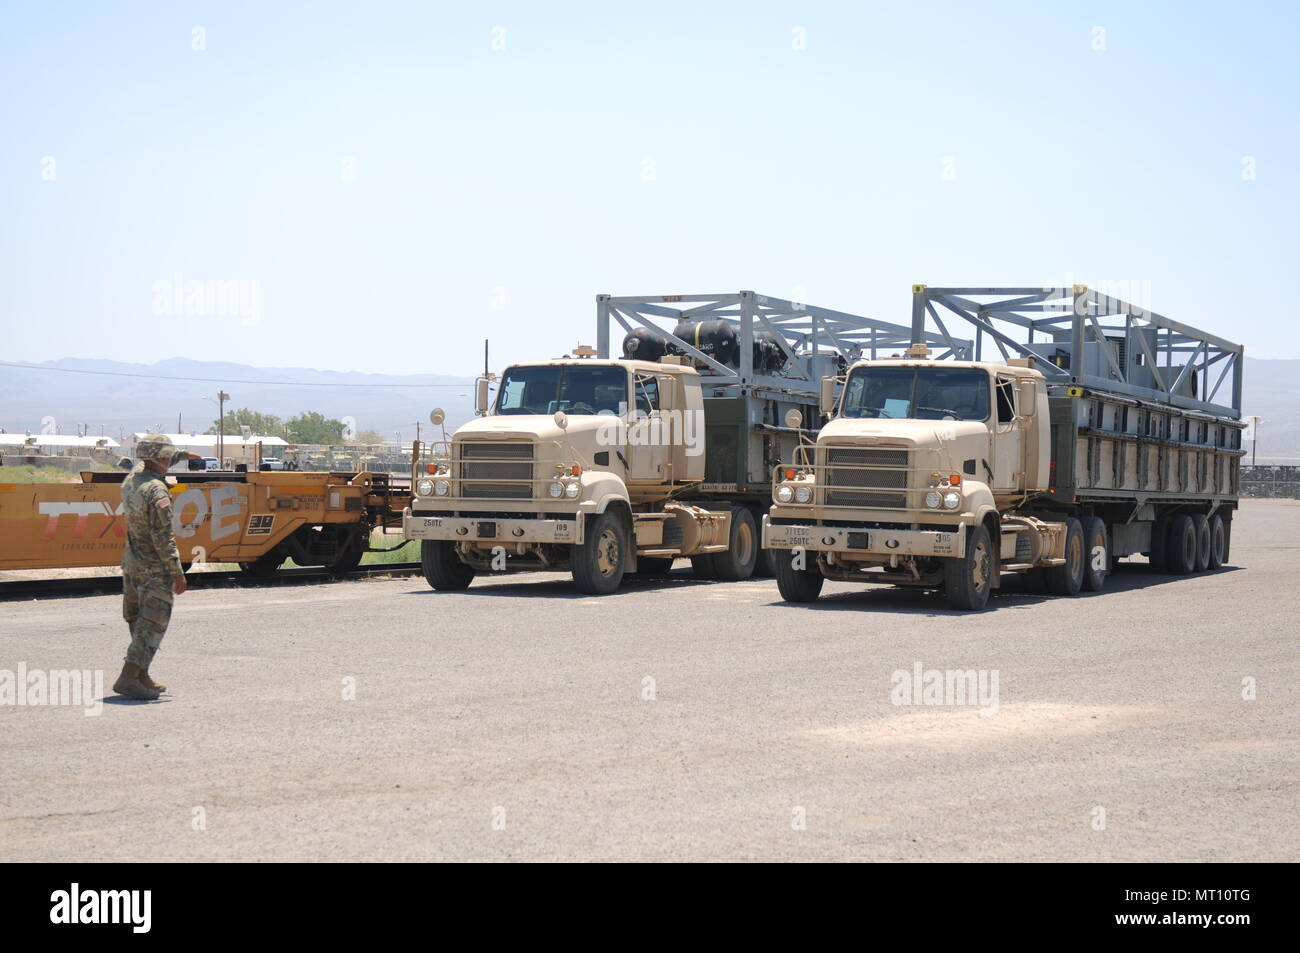 The 250th TC prepares to convoy and transport sections of the MCS for Yermo, Calif., to the Port of San Diego during Big LOTS West 17. - Stock Image